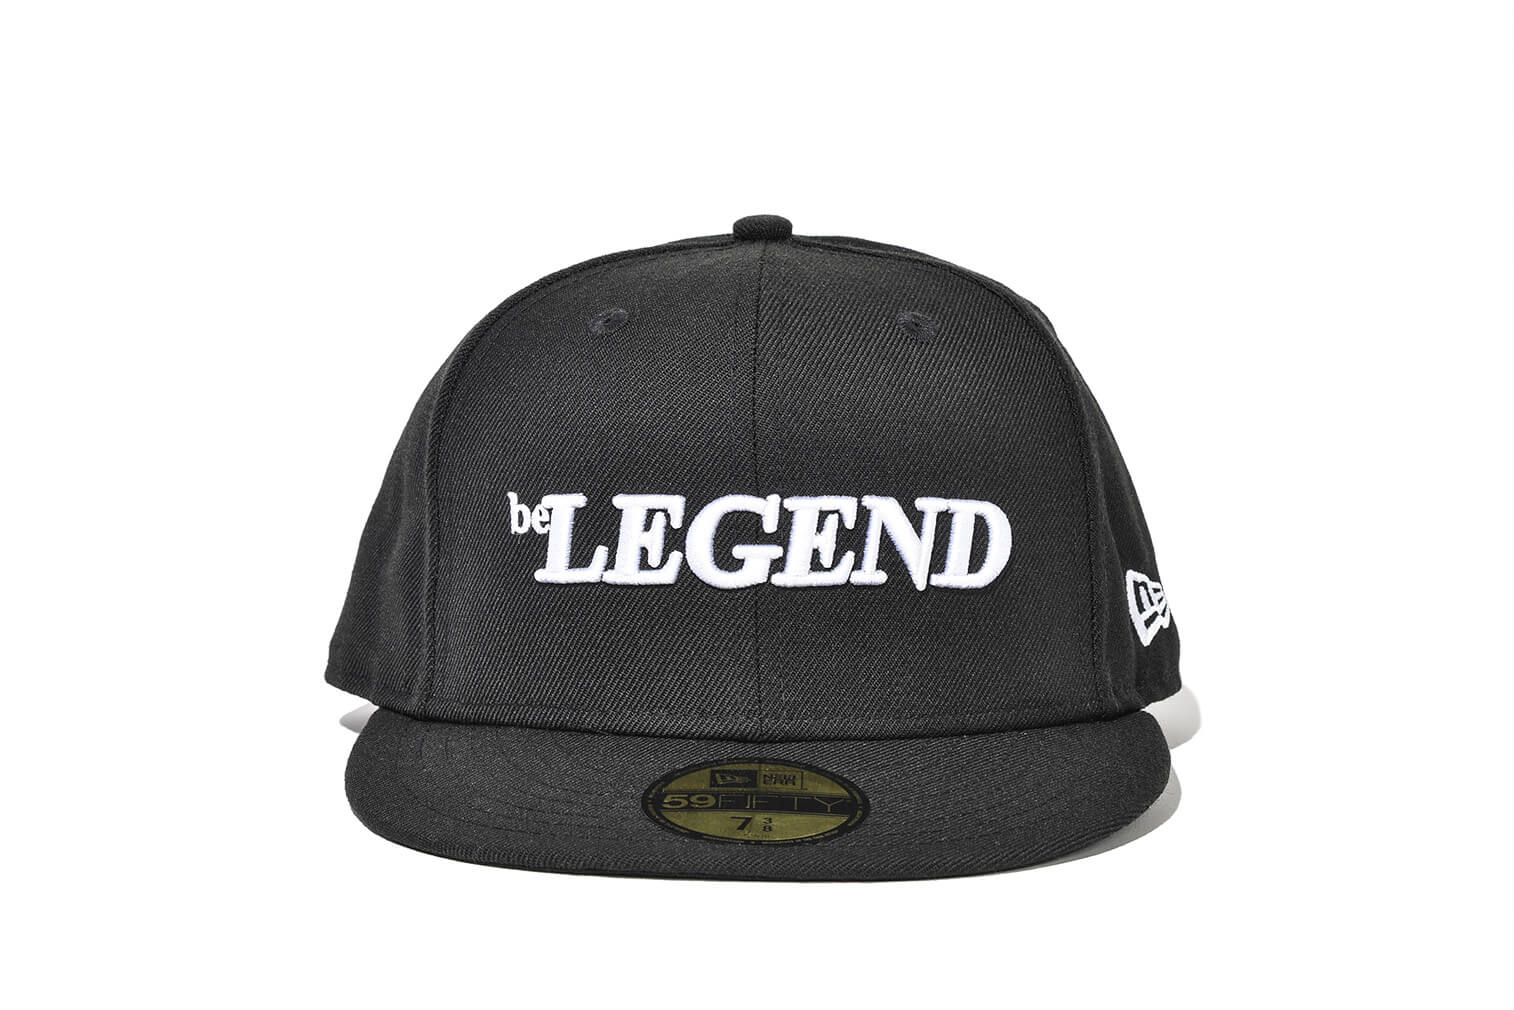 59FIFTY BE LEGEND NEW ERA CAP